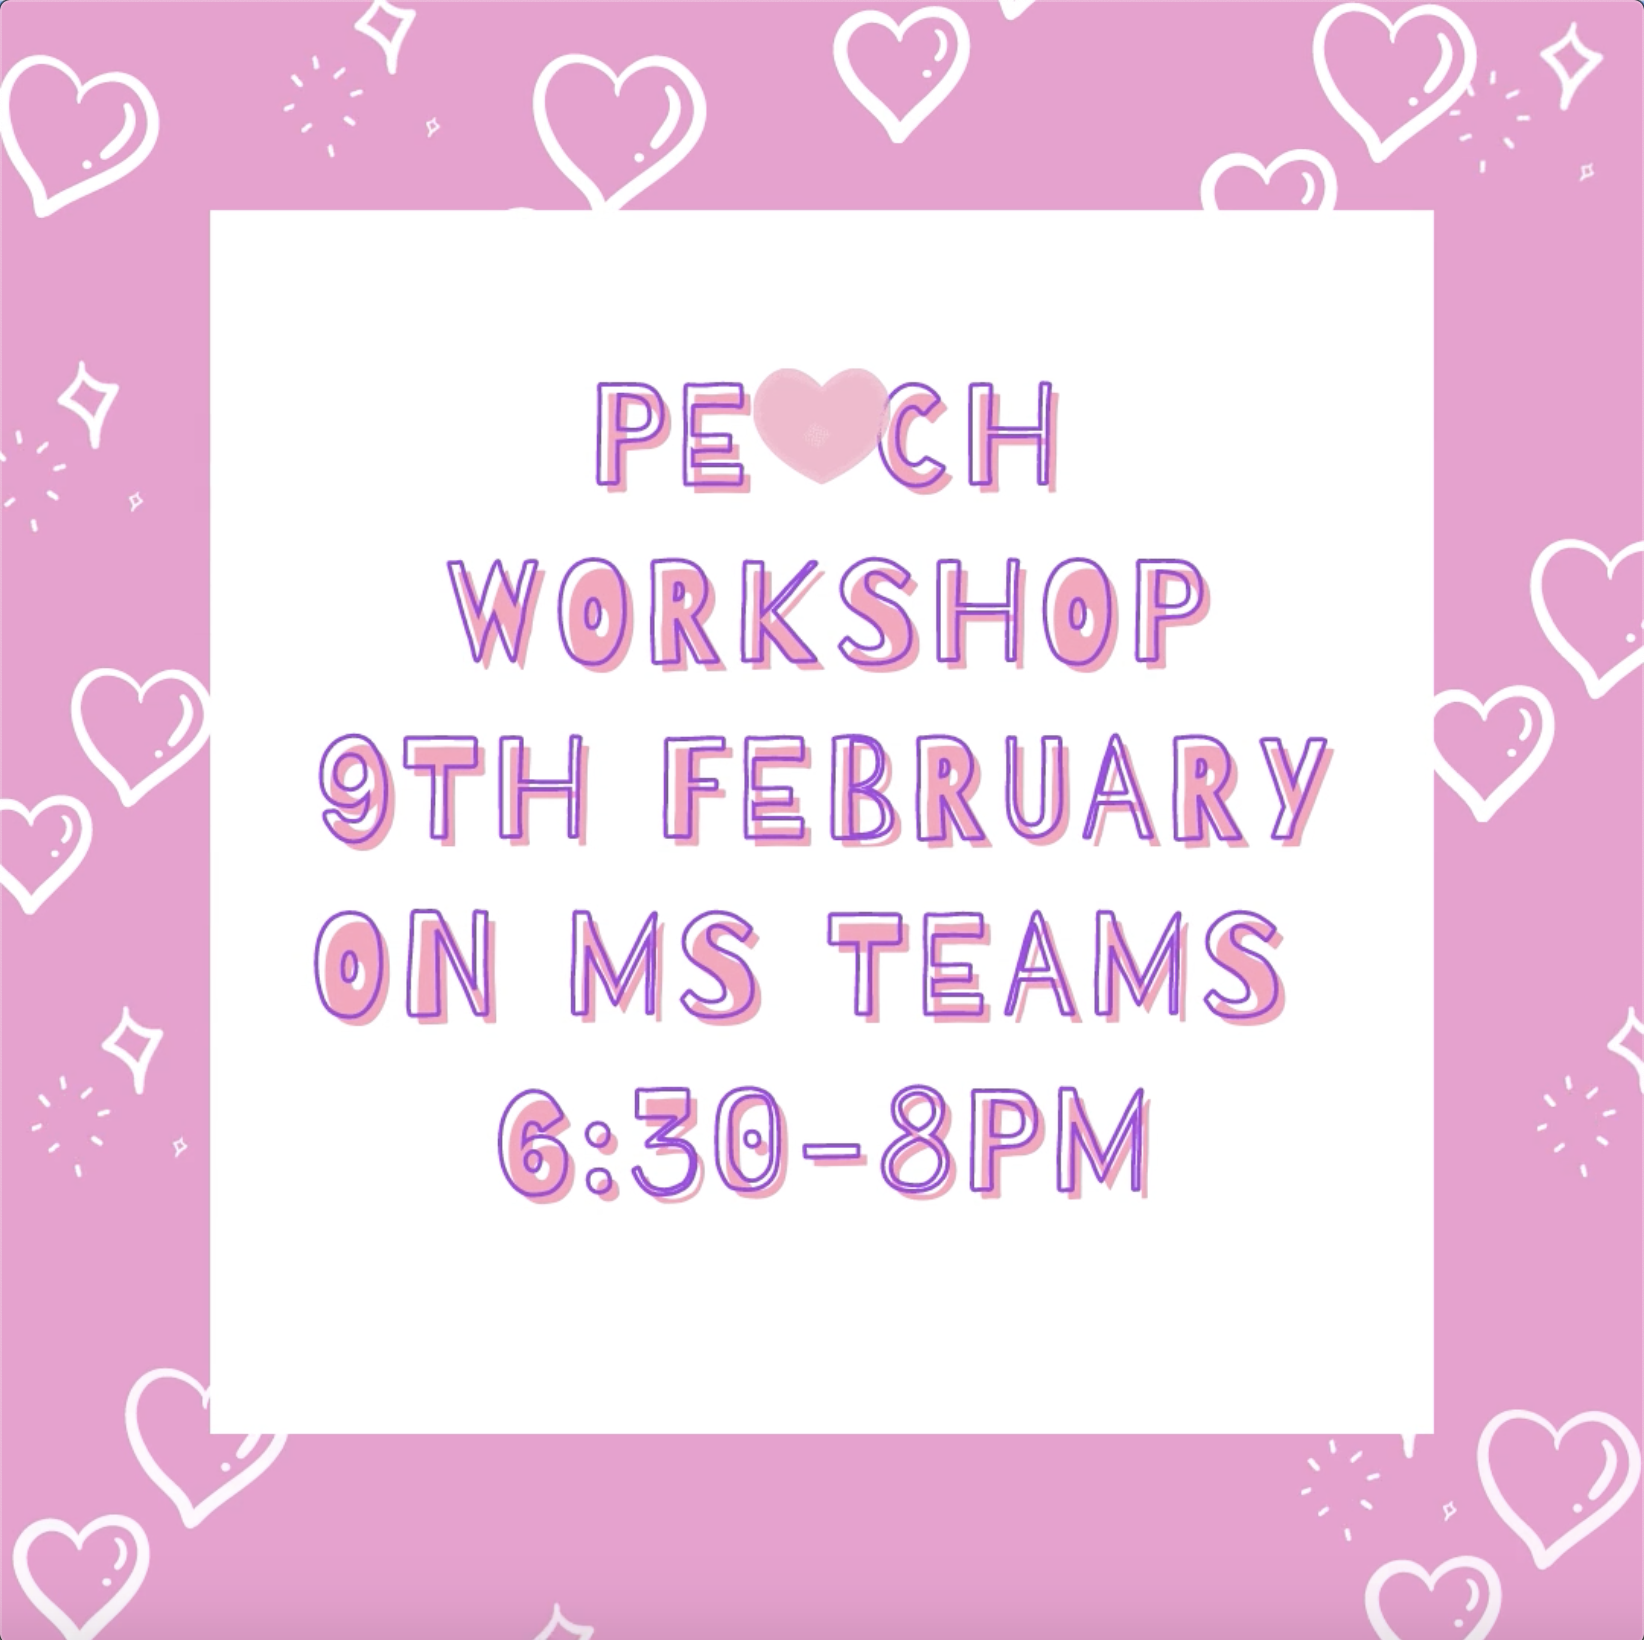 Come join us at our love-themed workshop!